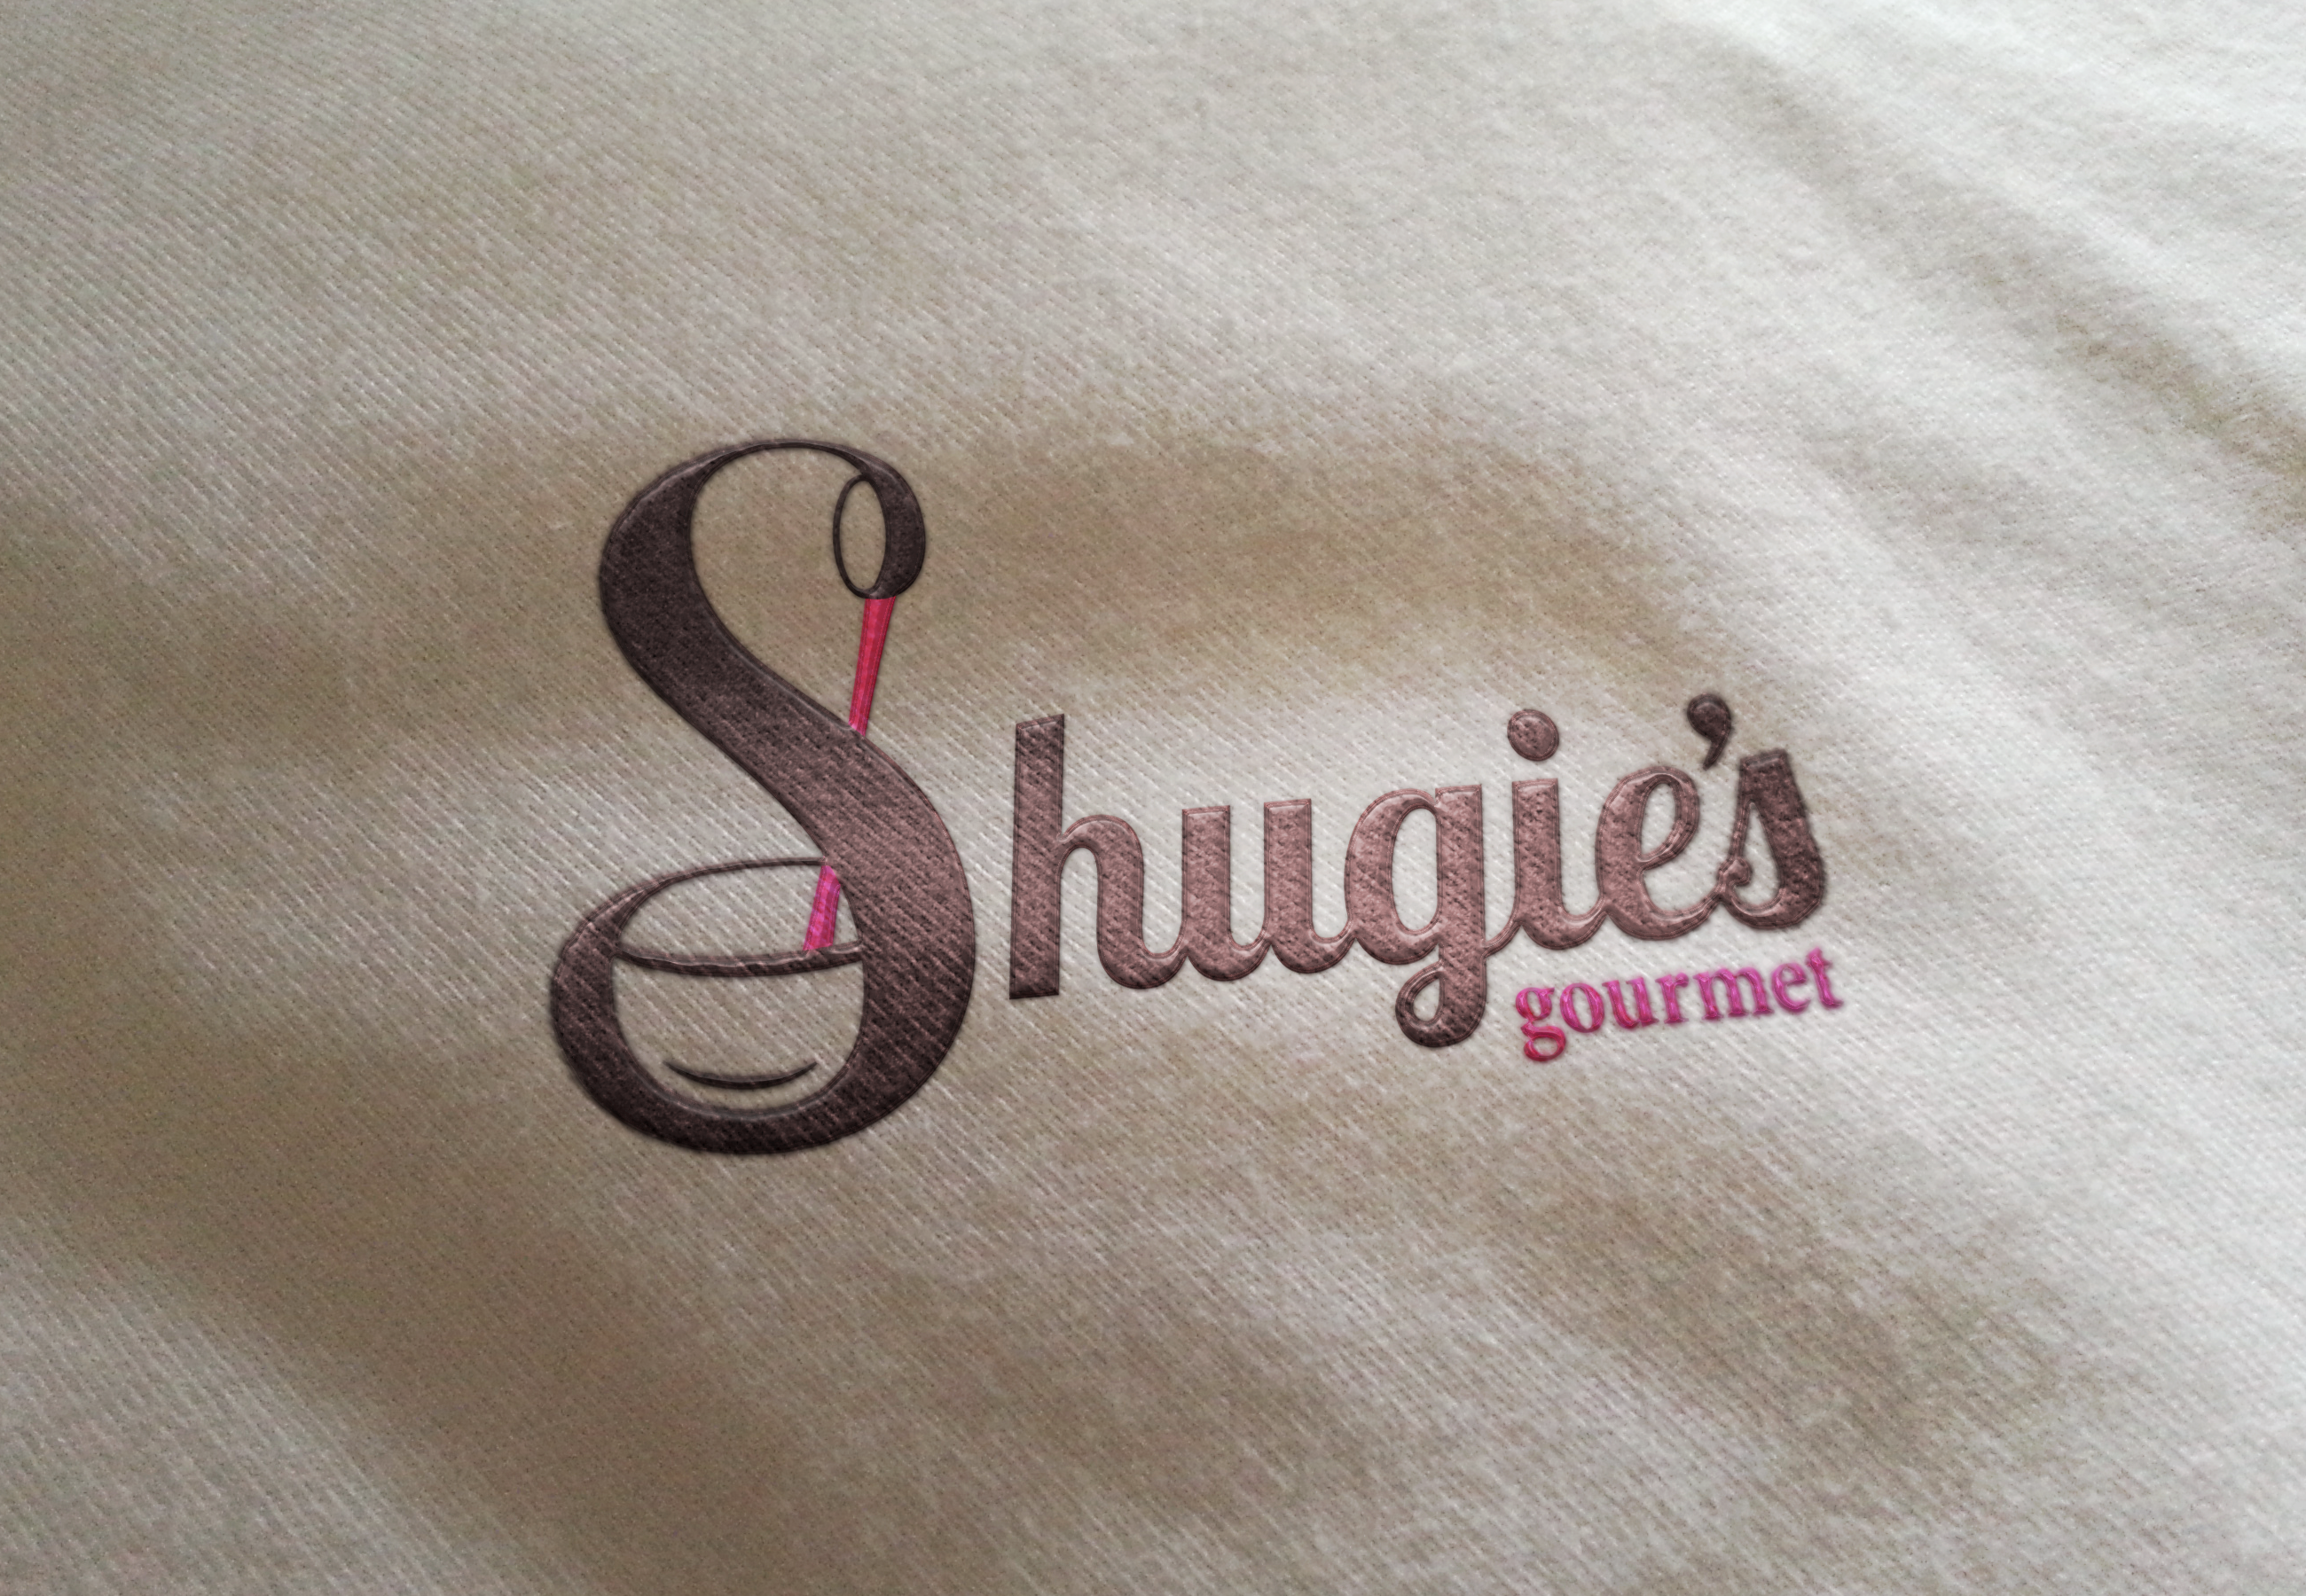 Shugie's logo on apron.